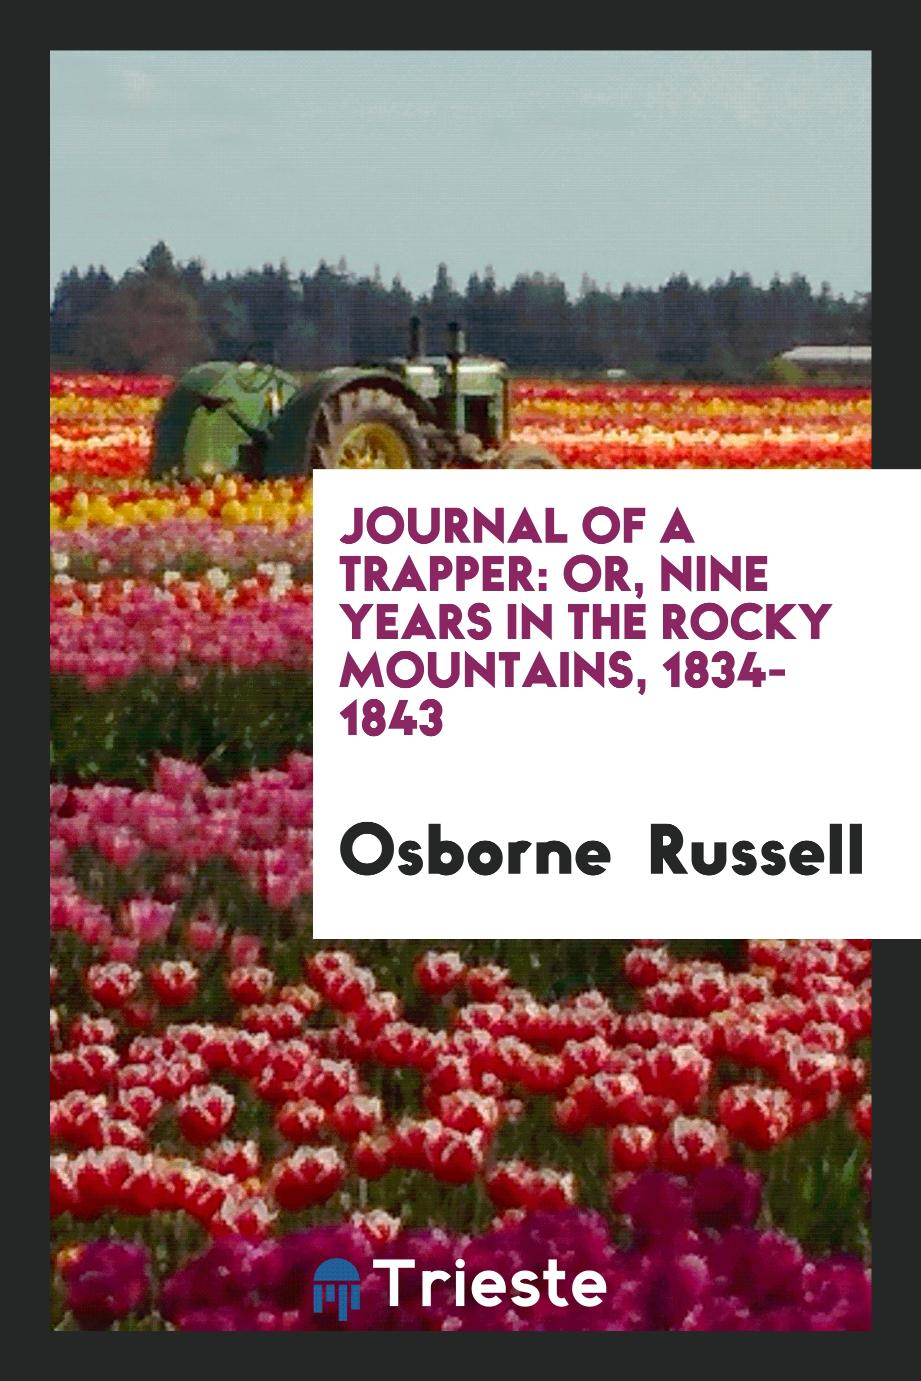 Journal of a Trapper: Or, Nine Years in the Rocky Mountains, 1834-1843